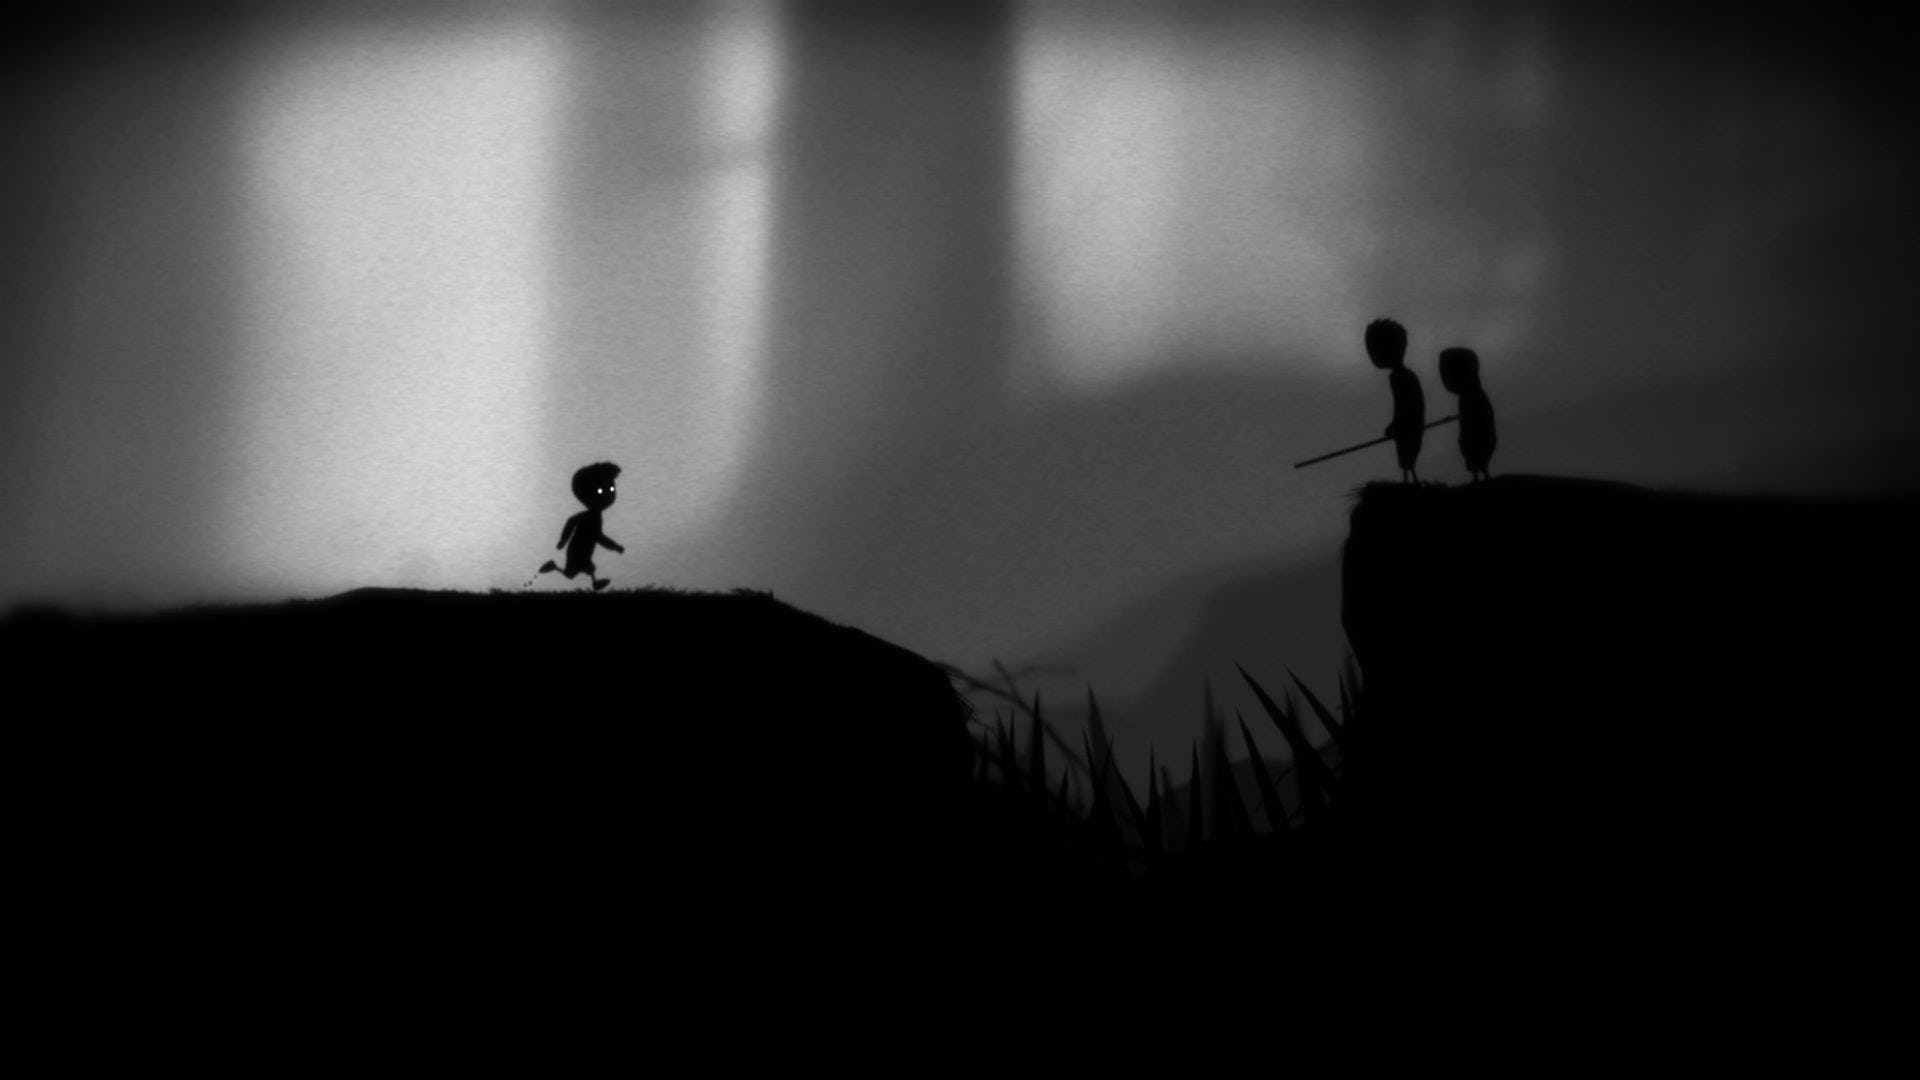 Limbo: Epic's FREE game of the week available until 7/25